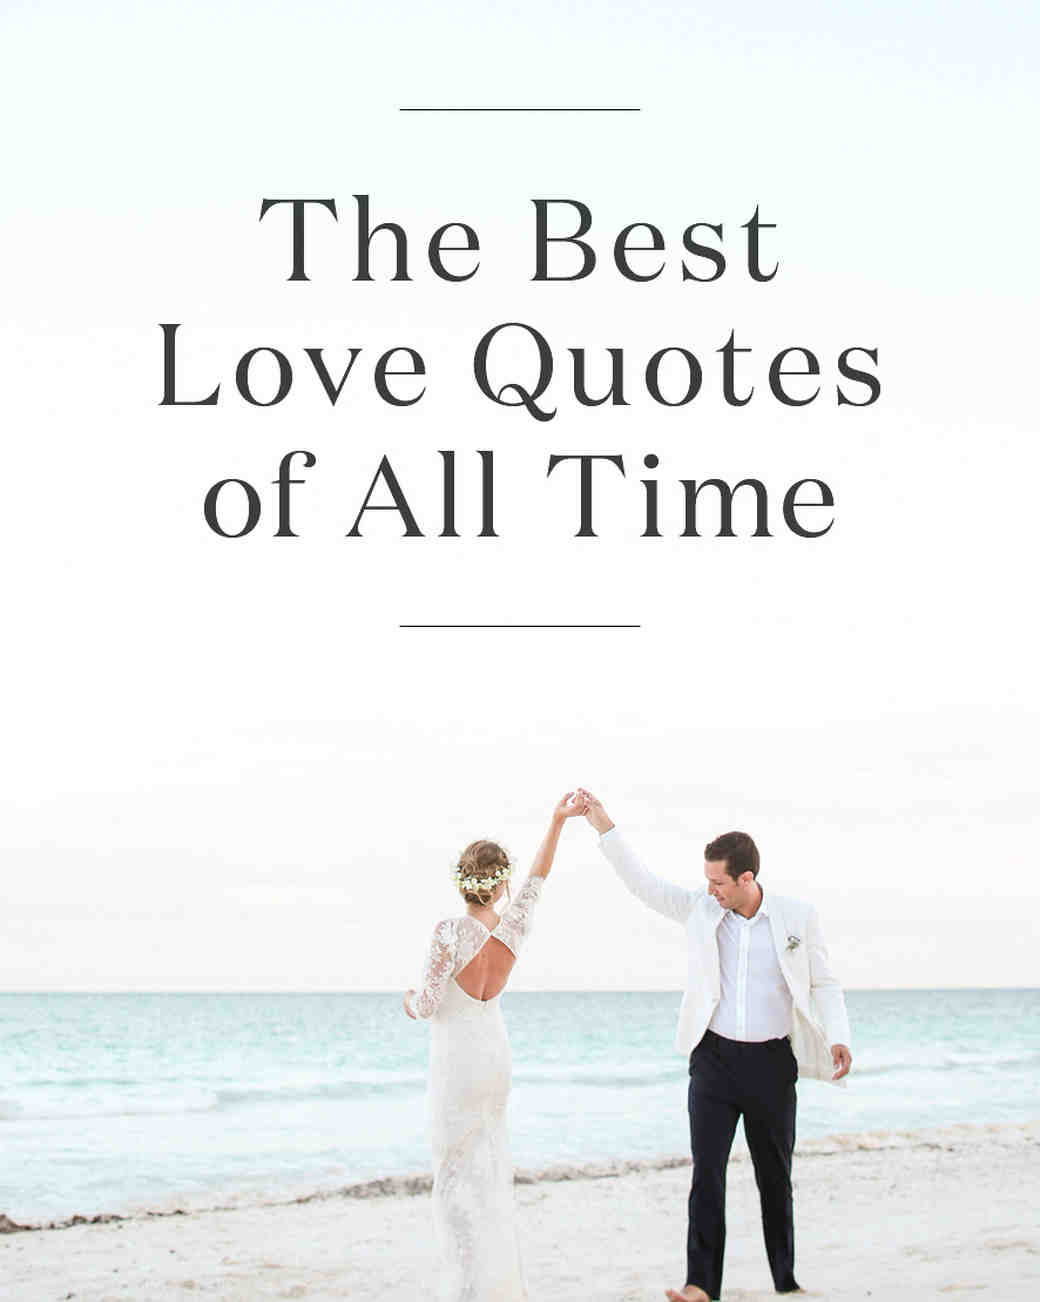 The Best Love Quotes : The 20 Best Love Quotes of All Time Martha Stewart Weddings